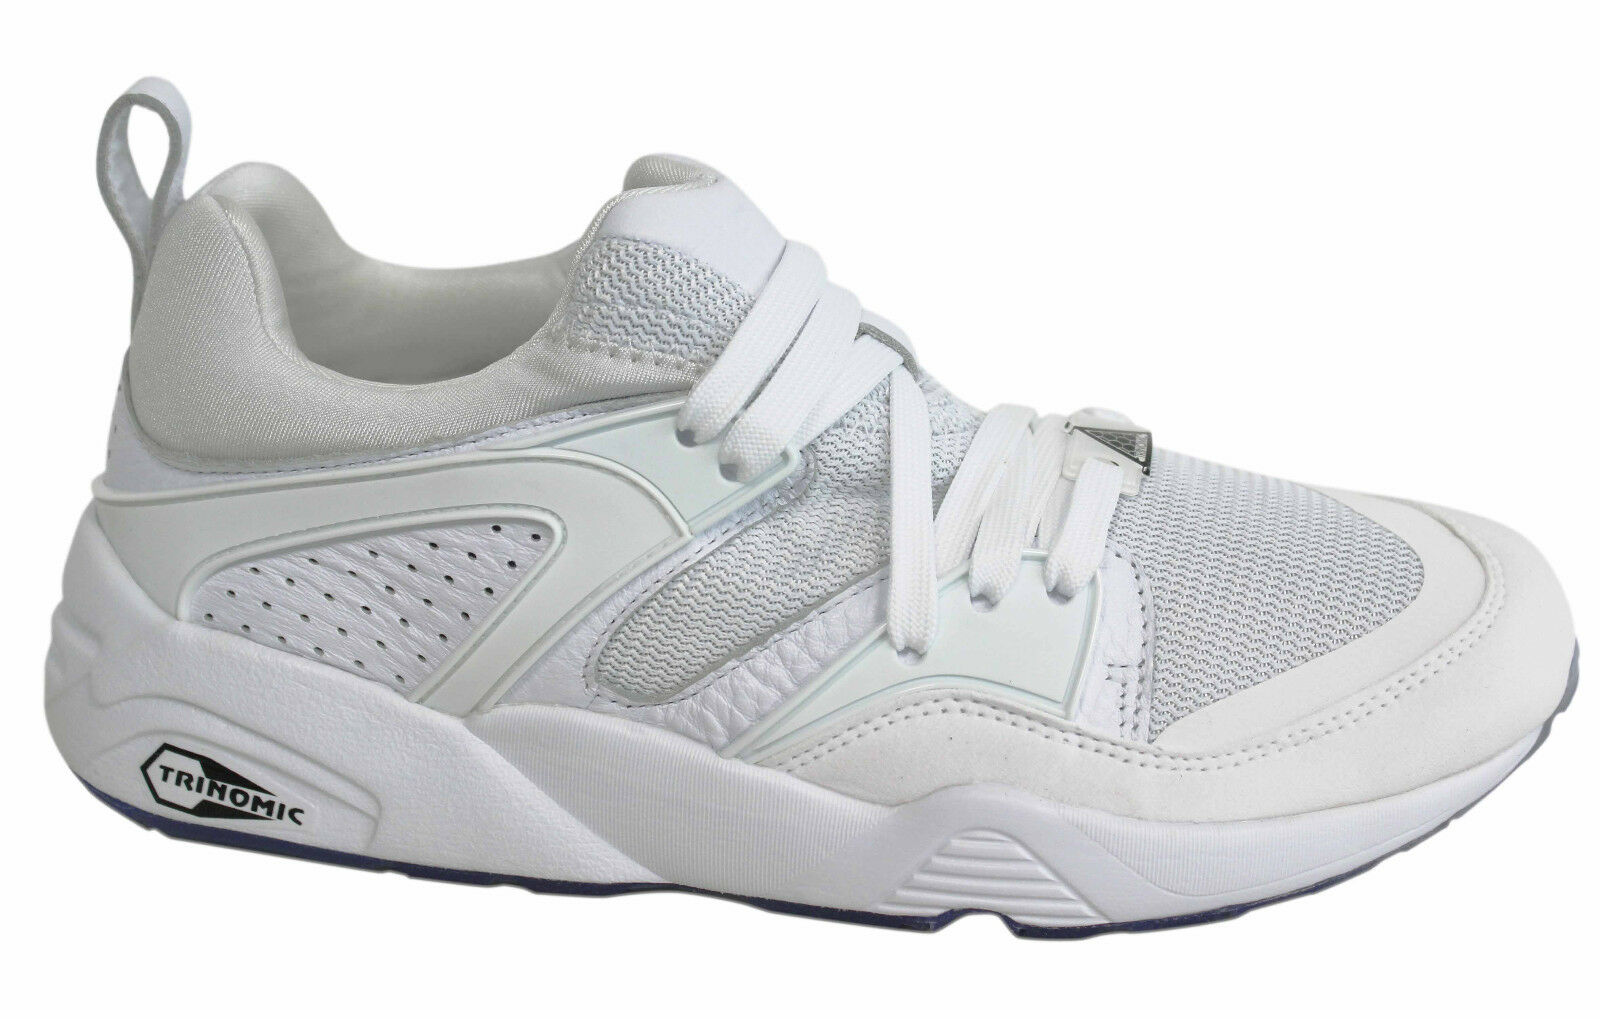 PUMA BLAZE OF GLORY Réflectif blanc  à Lacets Baskets Hommes 362188 02 P0